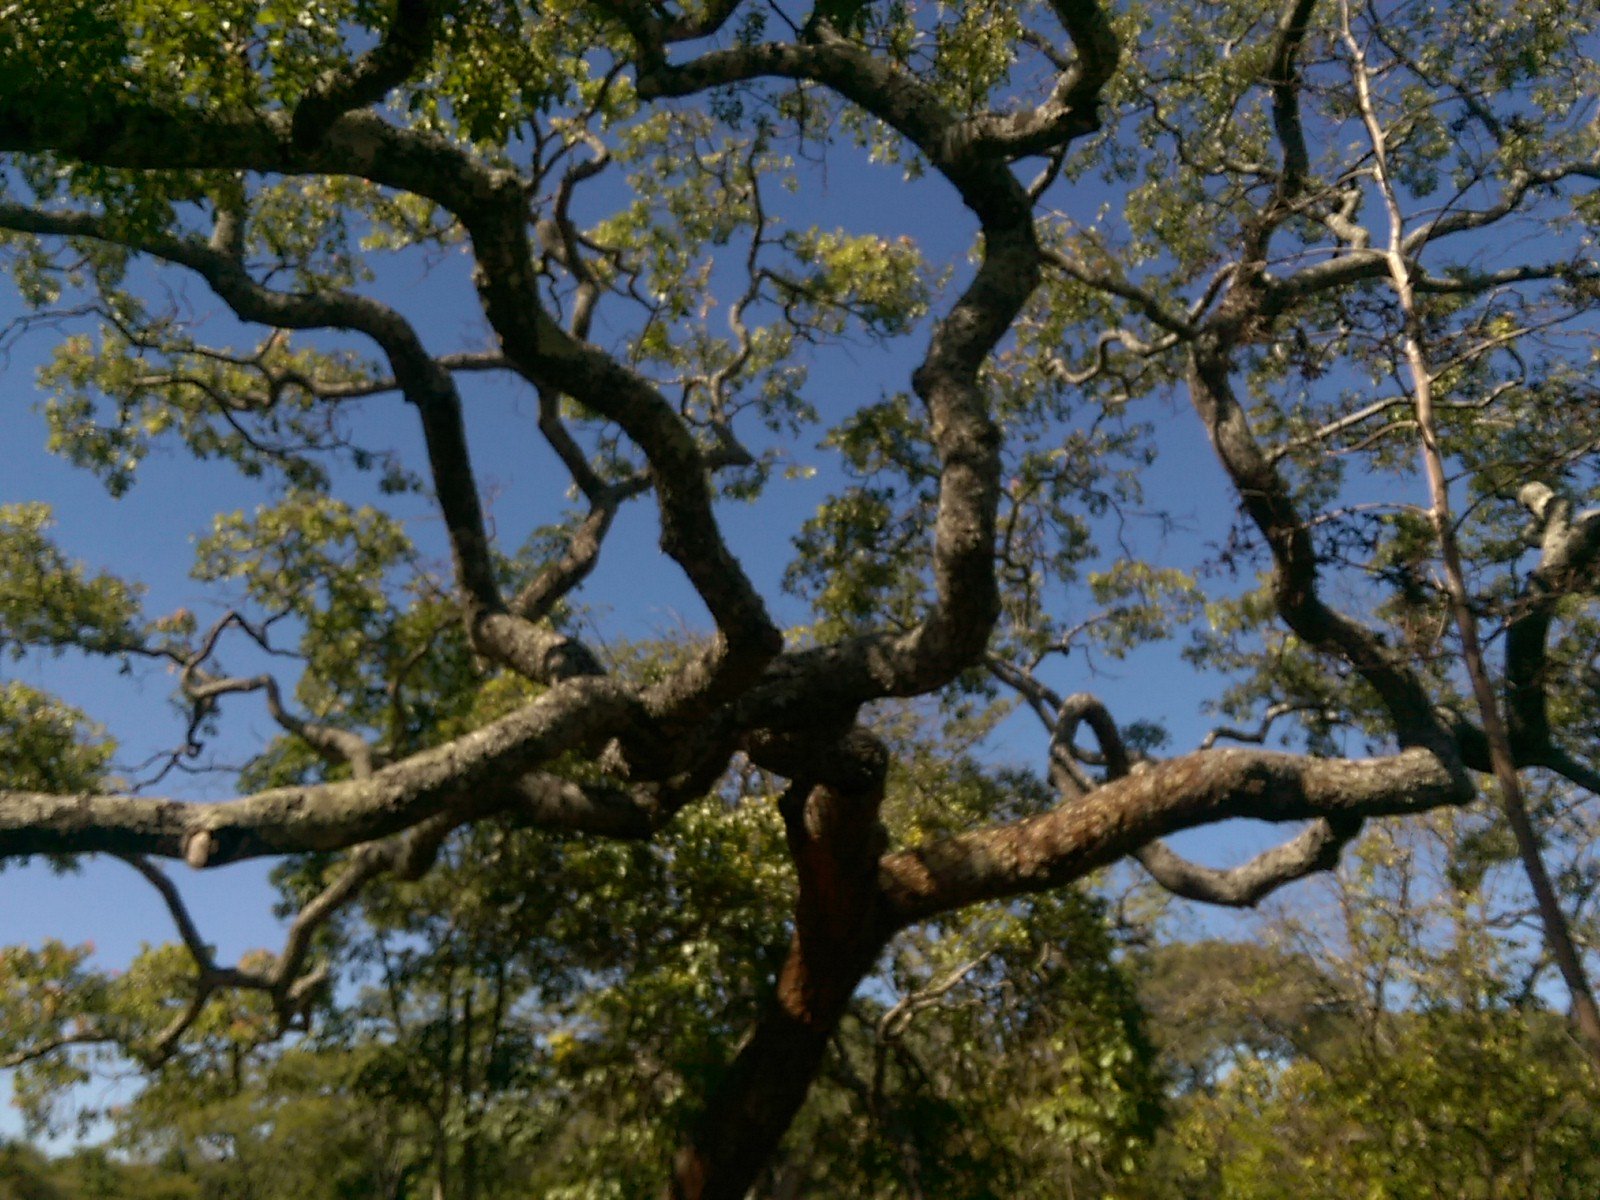 A twisty tree with green leaves against a blue sky